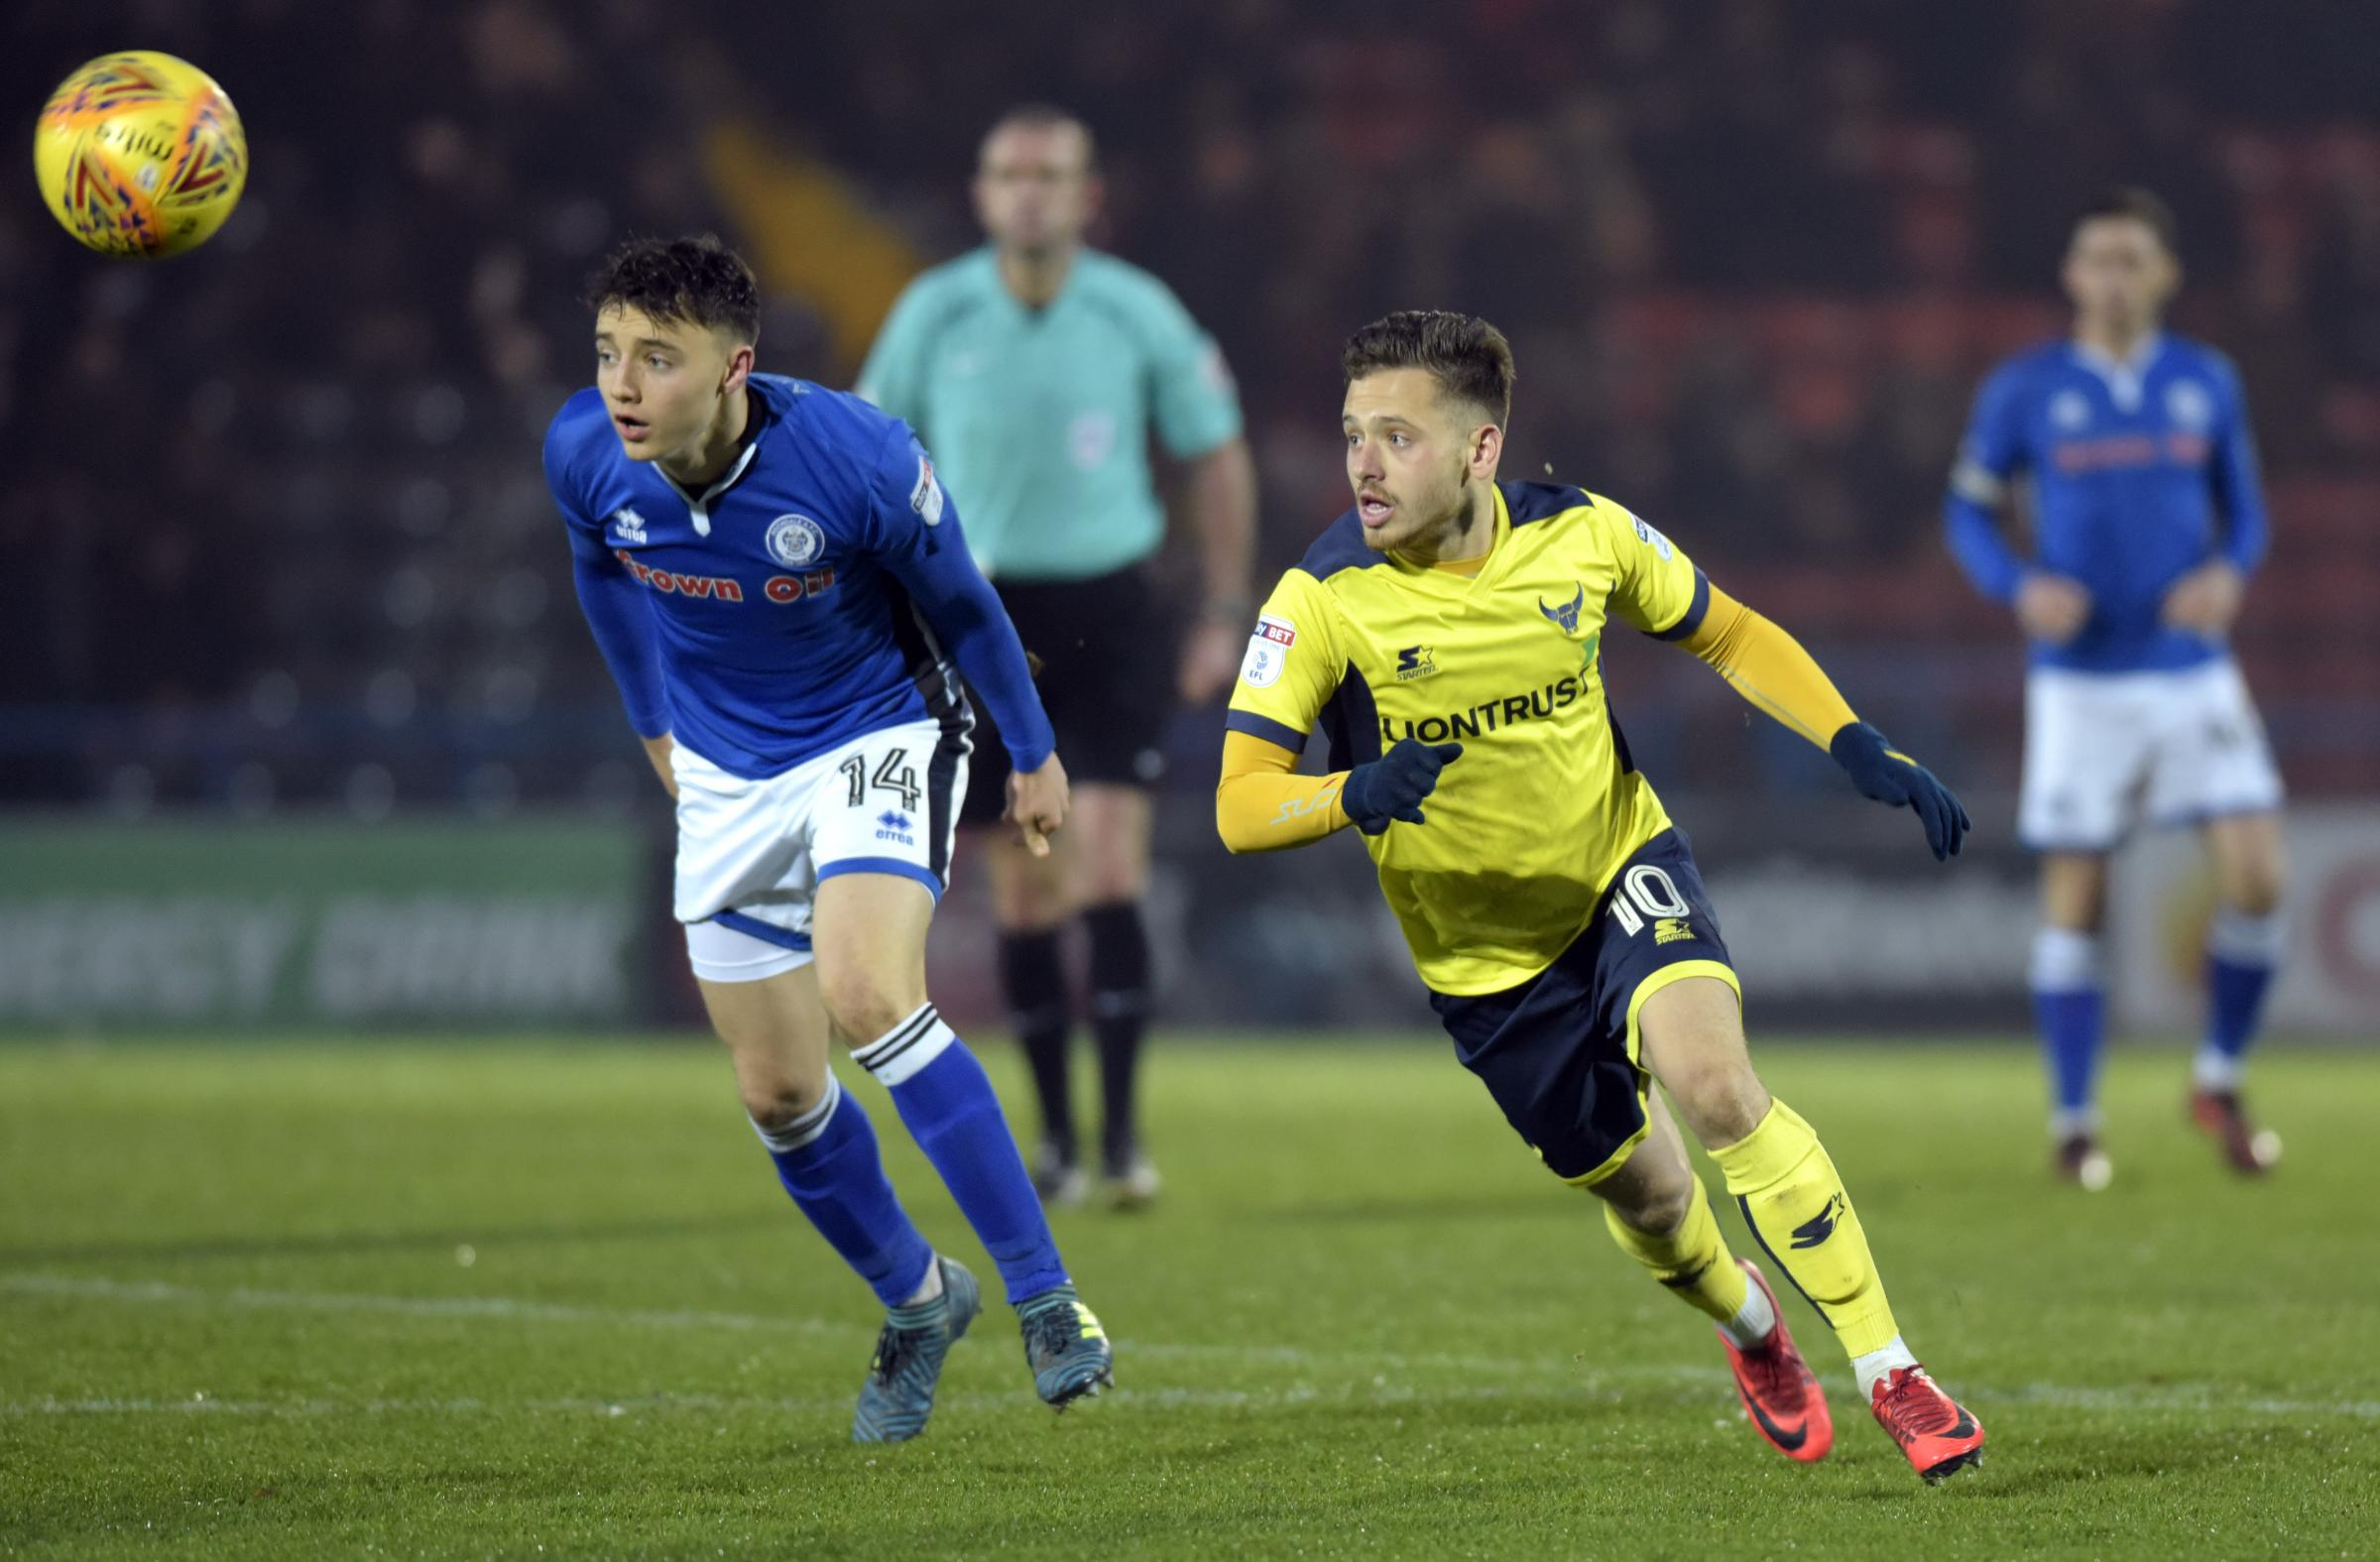 ON THE ATTACK: Jack Payne attempts to break through the Rochdale defence during Oxford United's goalless draw at Spotland Picture: David Pritchard